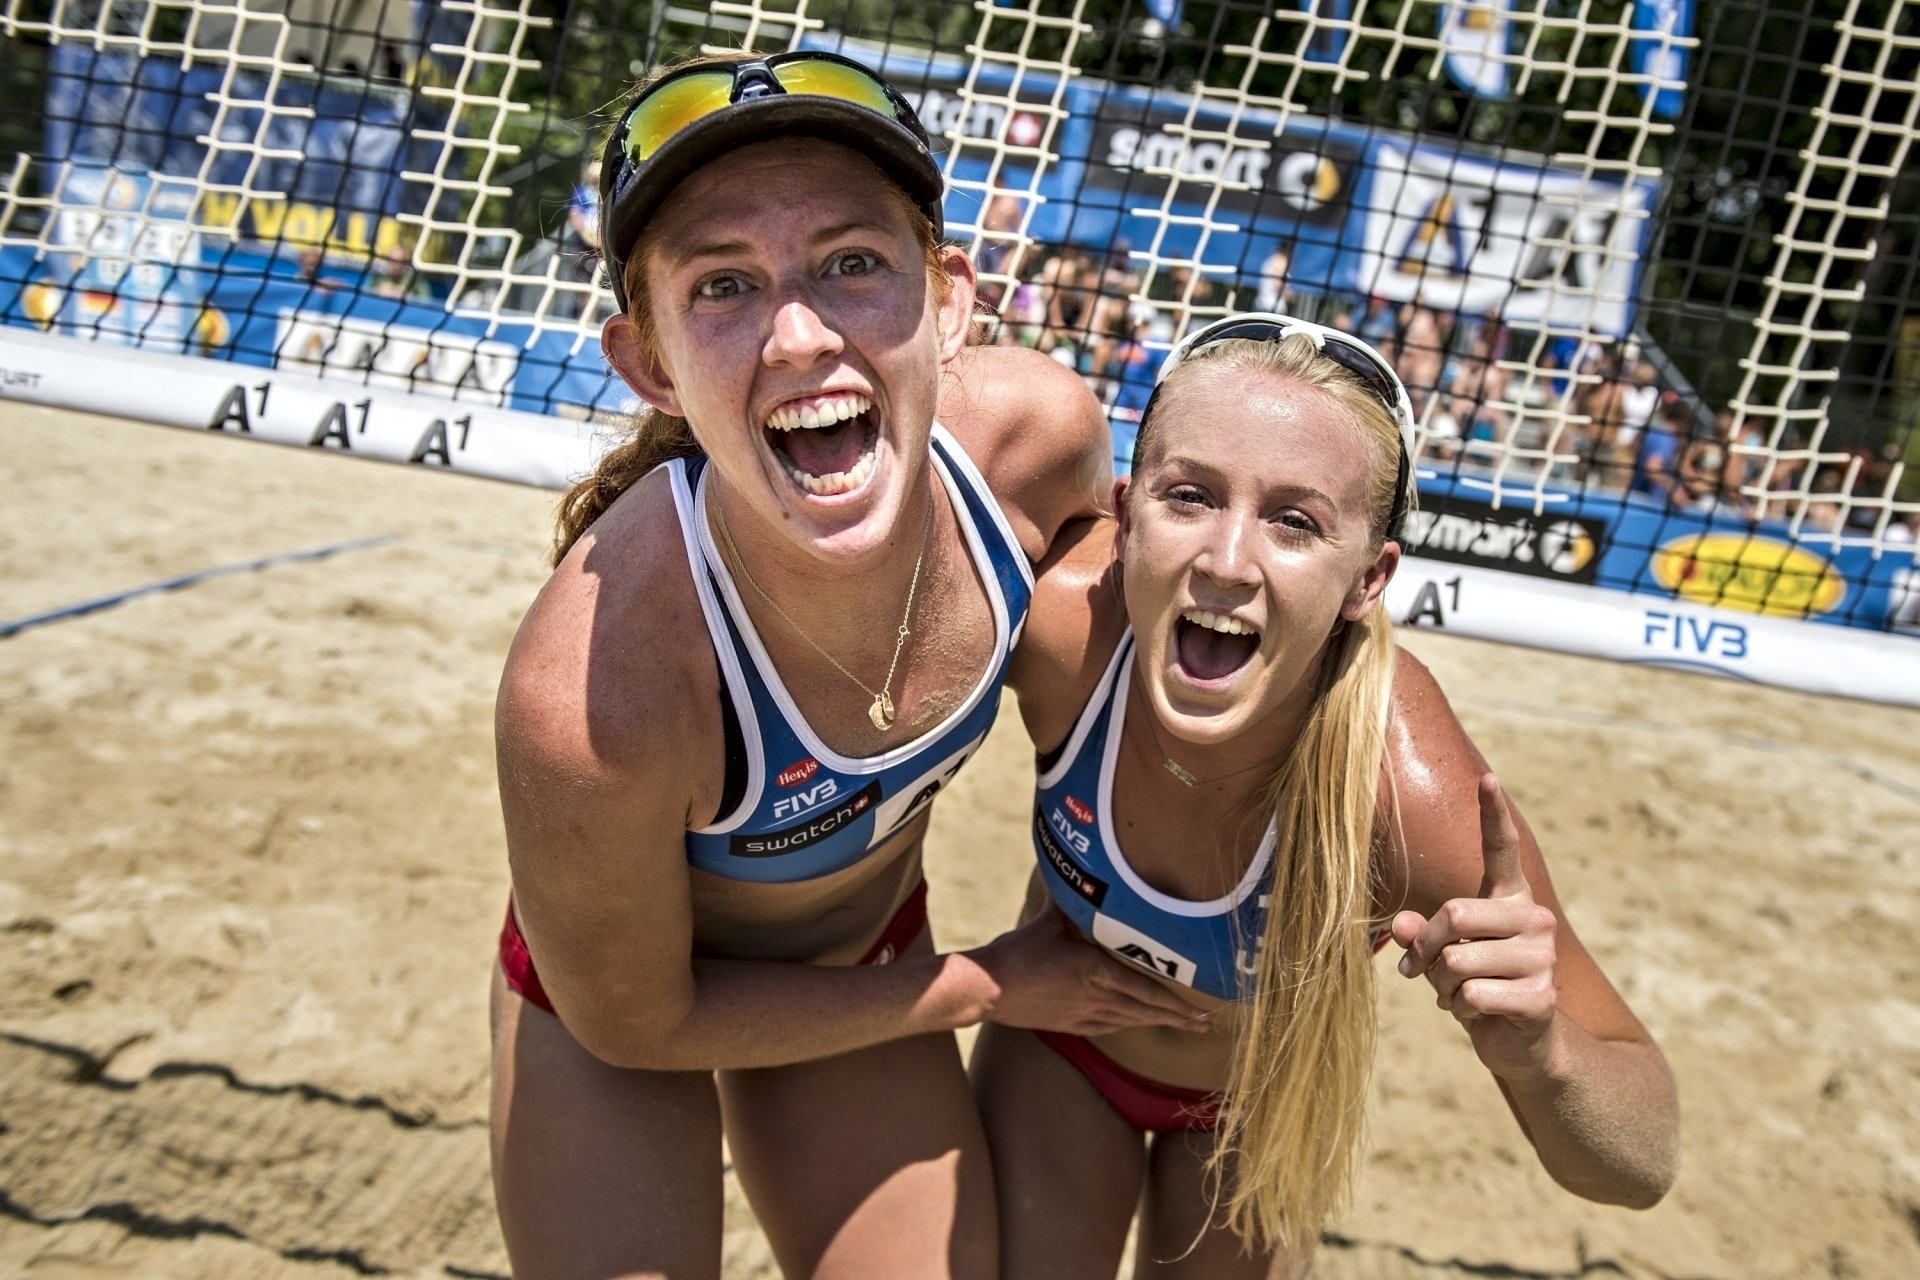 Sara (right) and Kelly celebrate their incredible victory over Ludwig/Walkenhorst at Klagenfurt in 2016